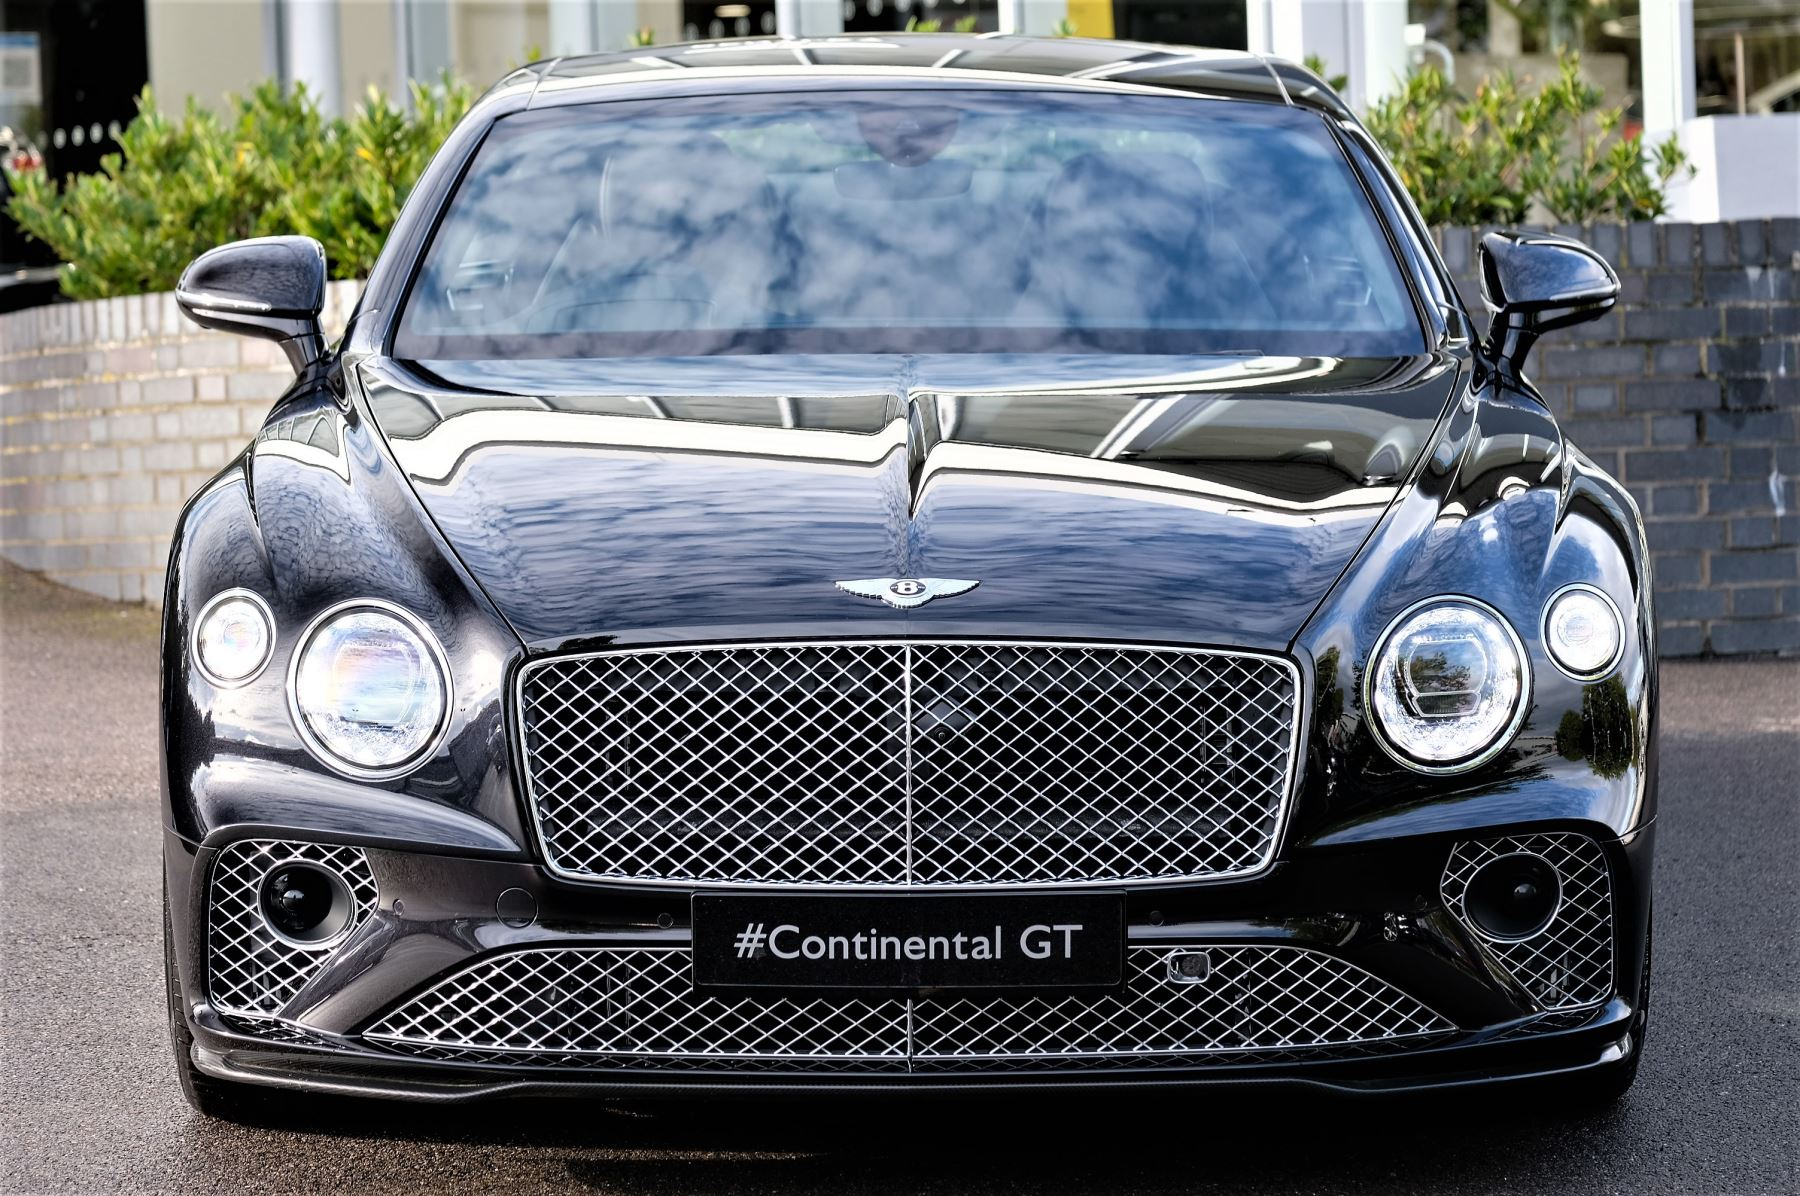 Bentley Continental GT 4.0 V8 2dr Auto [City+Touring Spec] image 2